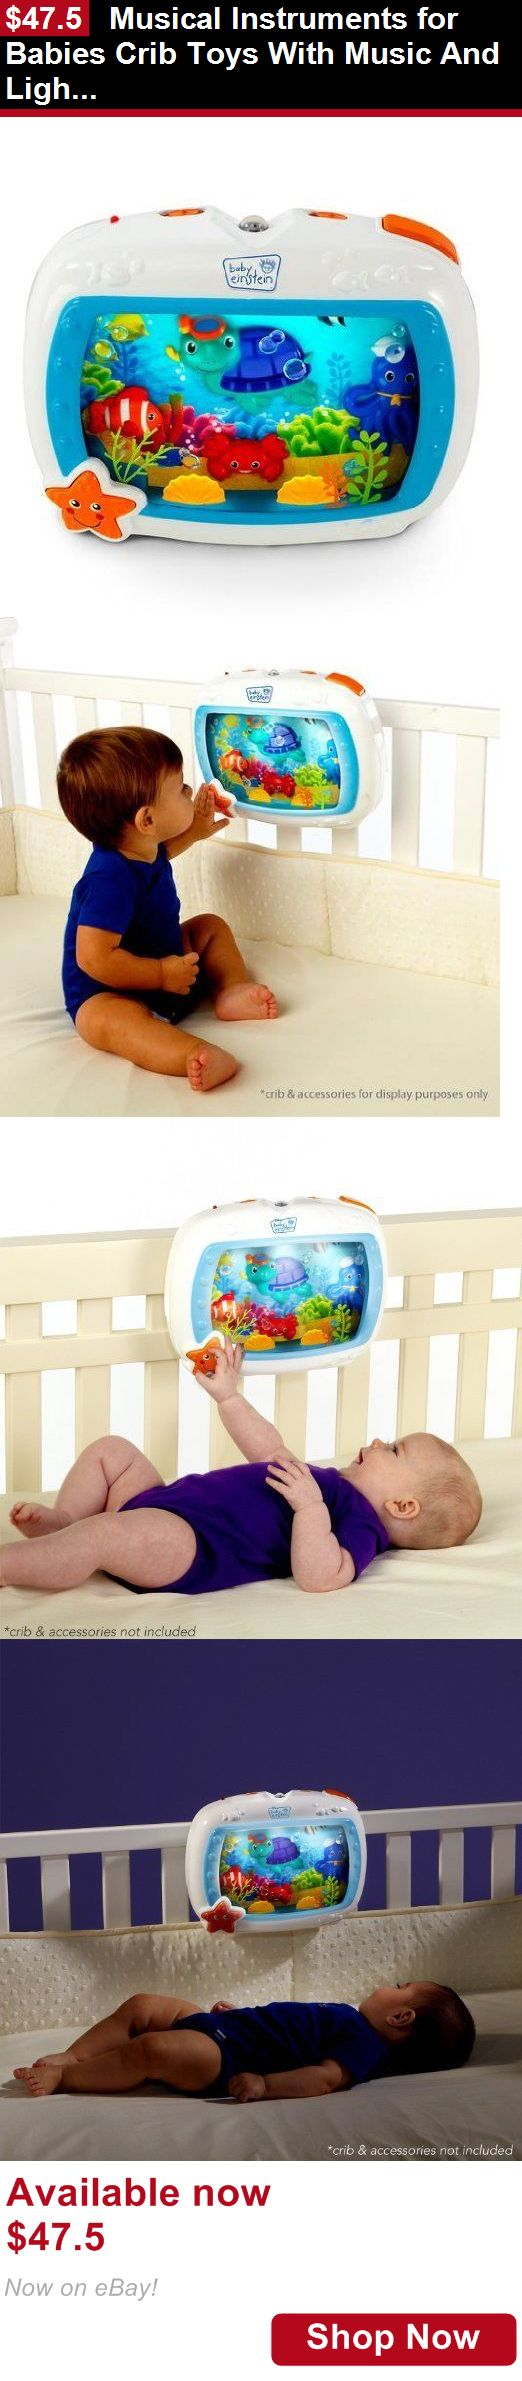 Crib Toys: Musical Instruments For Babies Crib Toys With Music And Lights Sounds Toddlers BUY IT NOW ONLY: $47.5